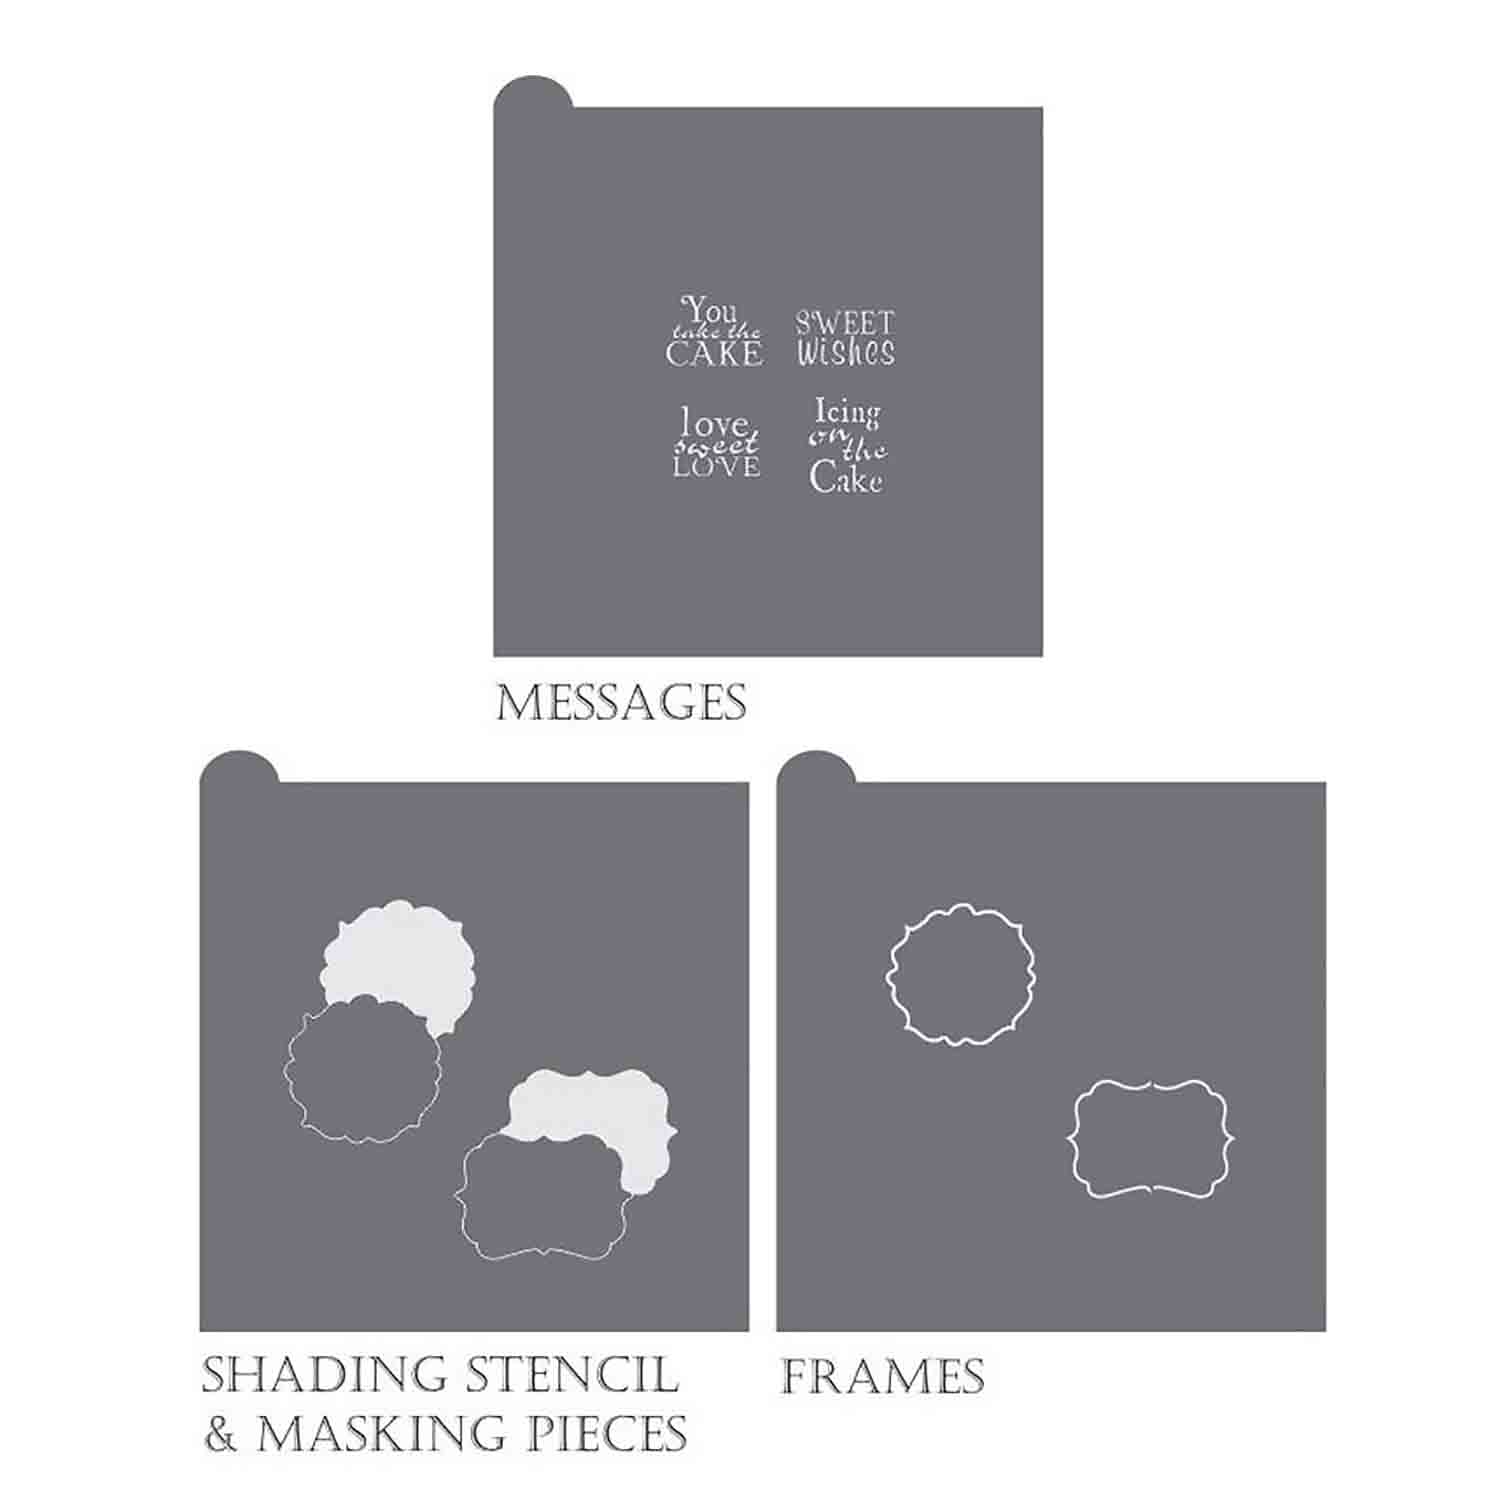 Take the Cake Message and Frame Stencil Set by Julia Usher